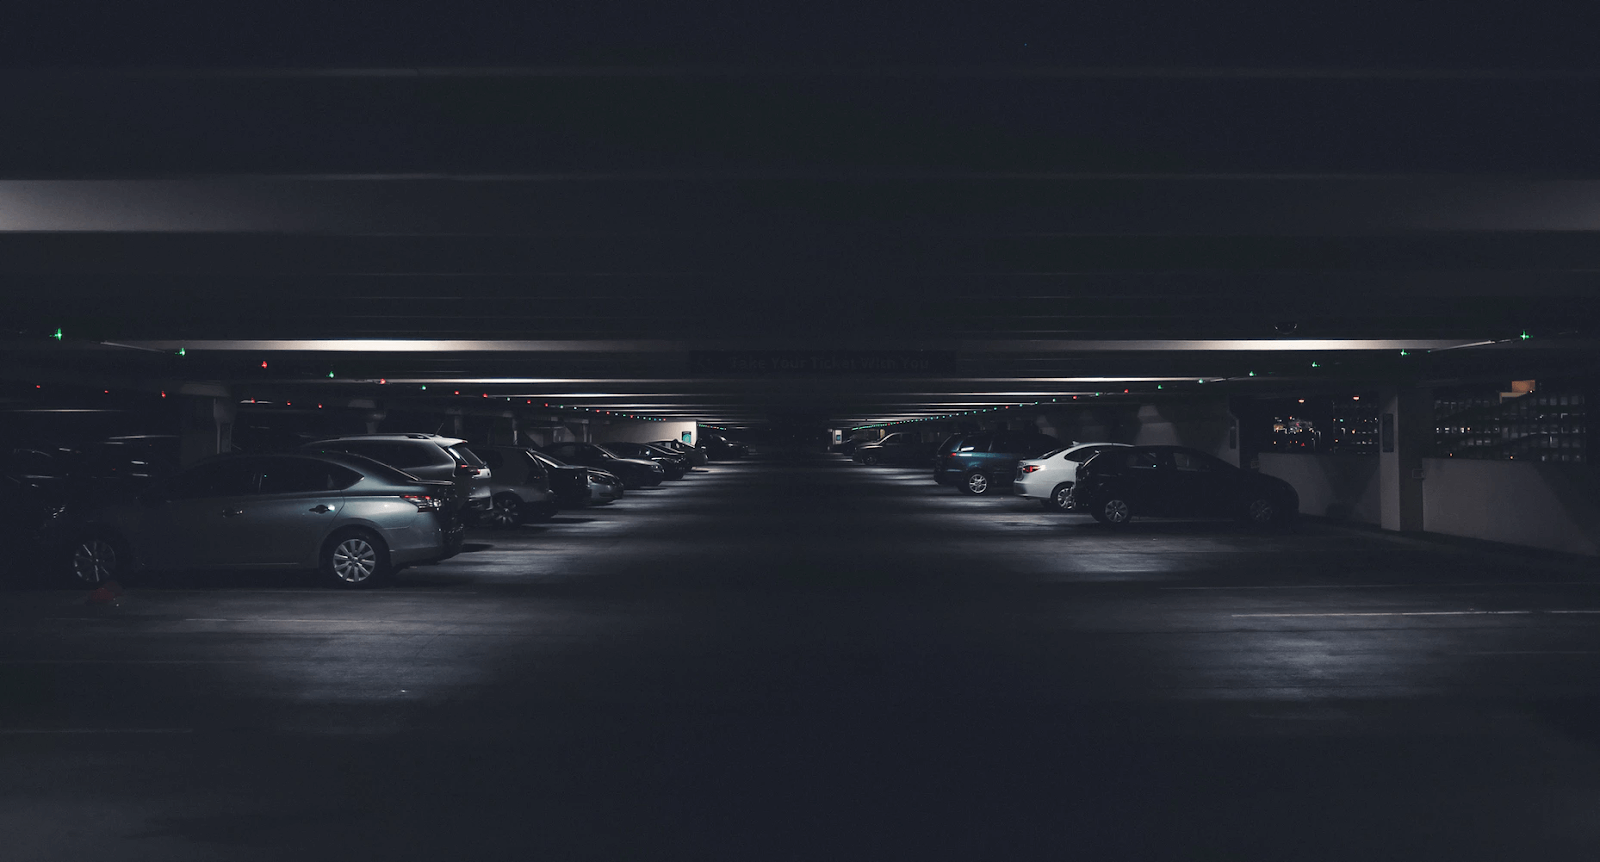 A dark parking garage with lights illuminating the parked cars